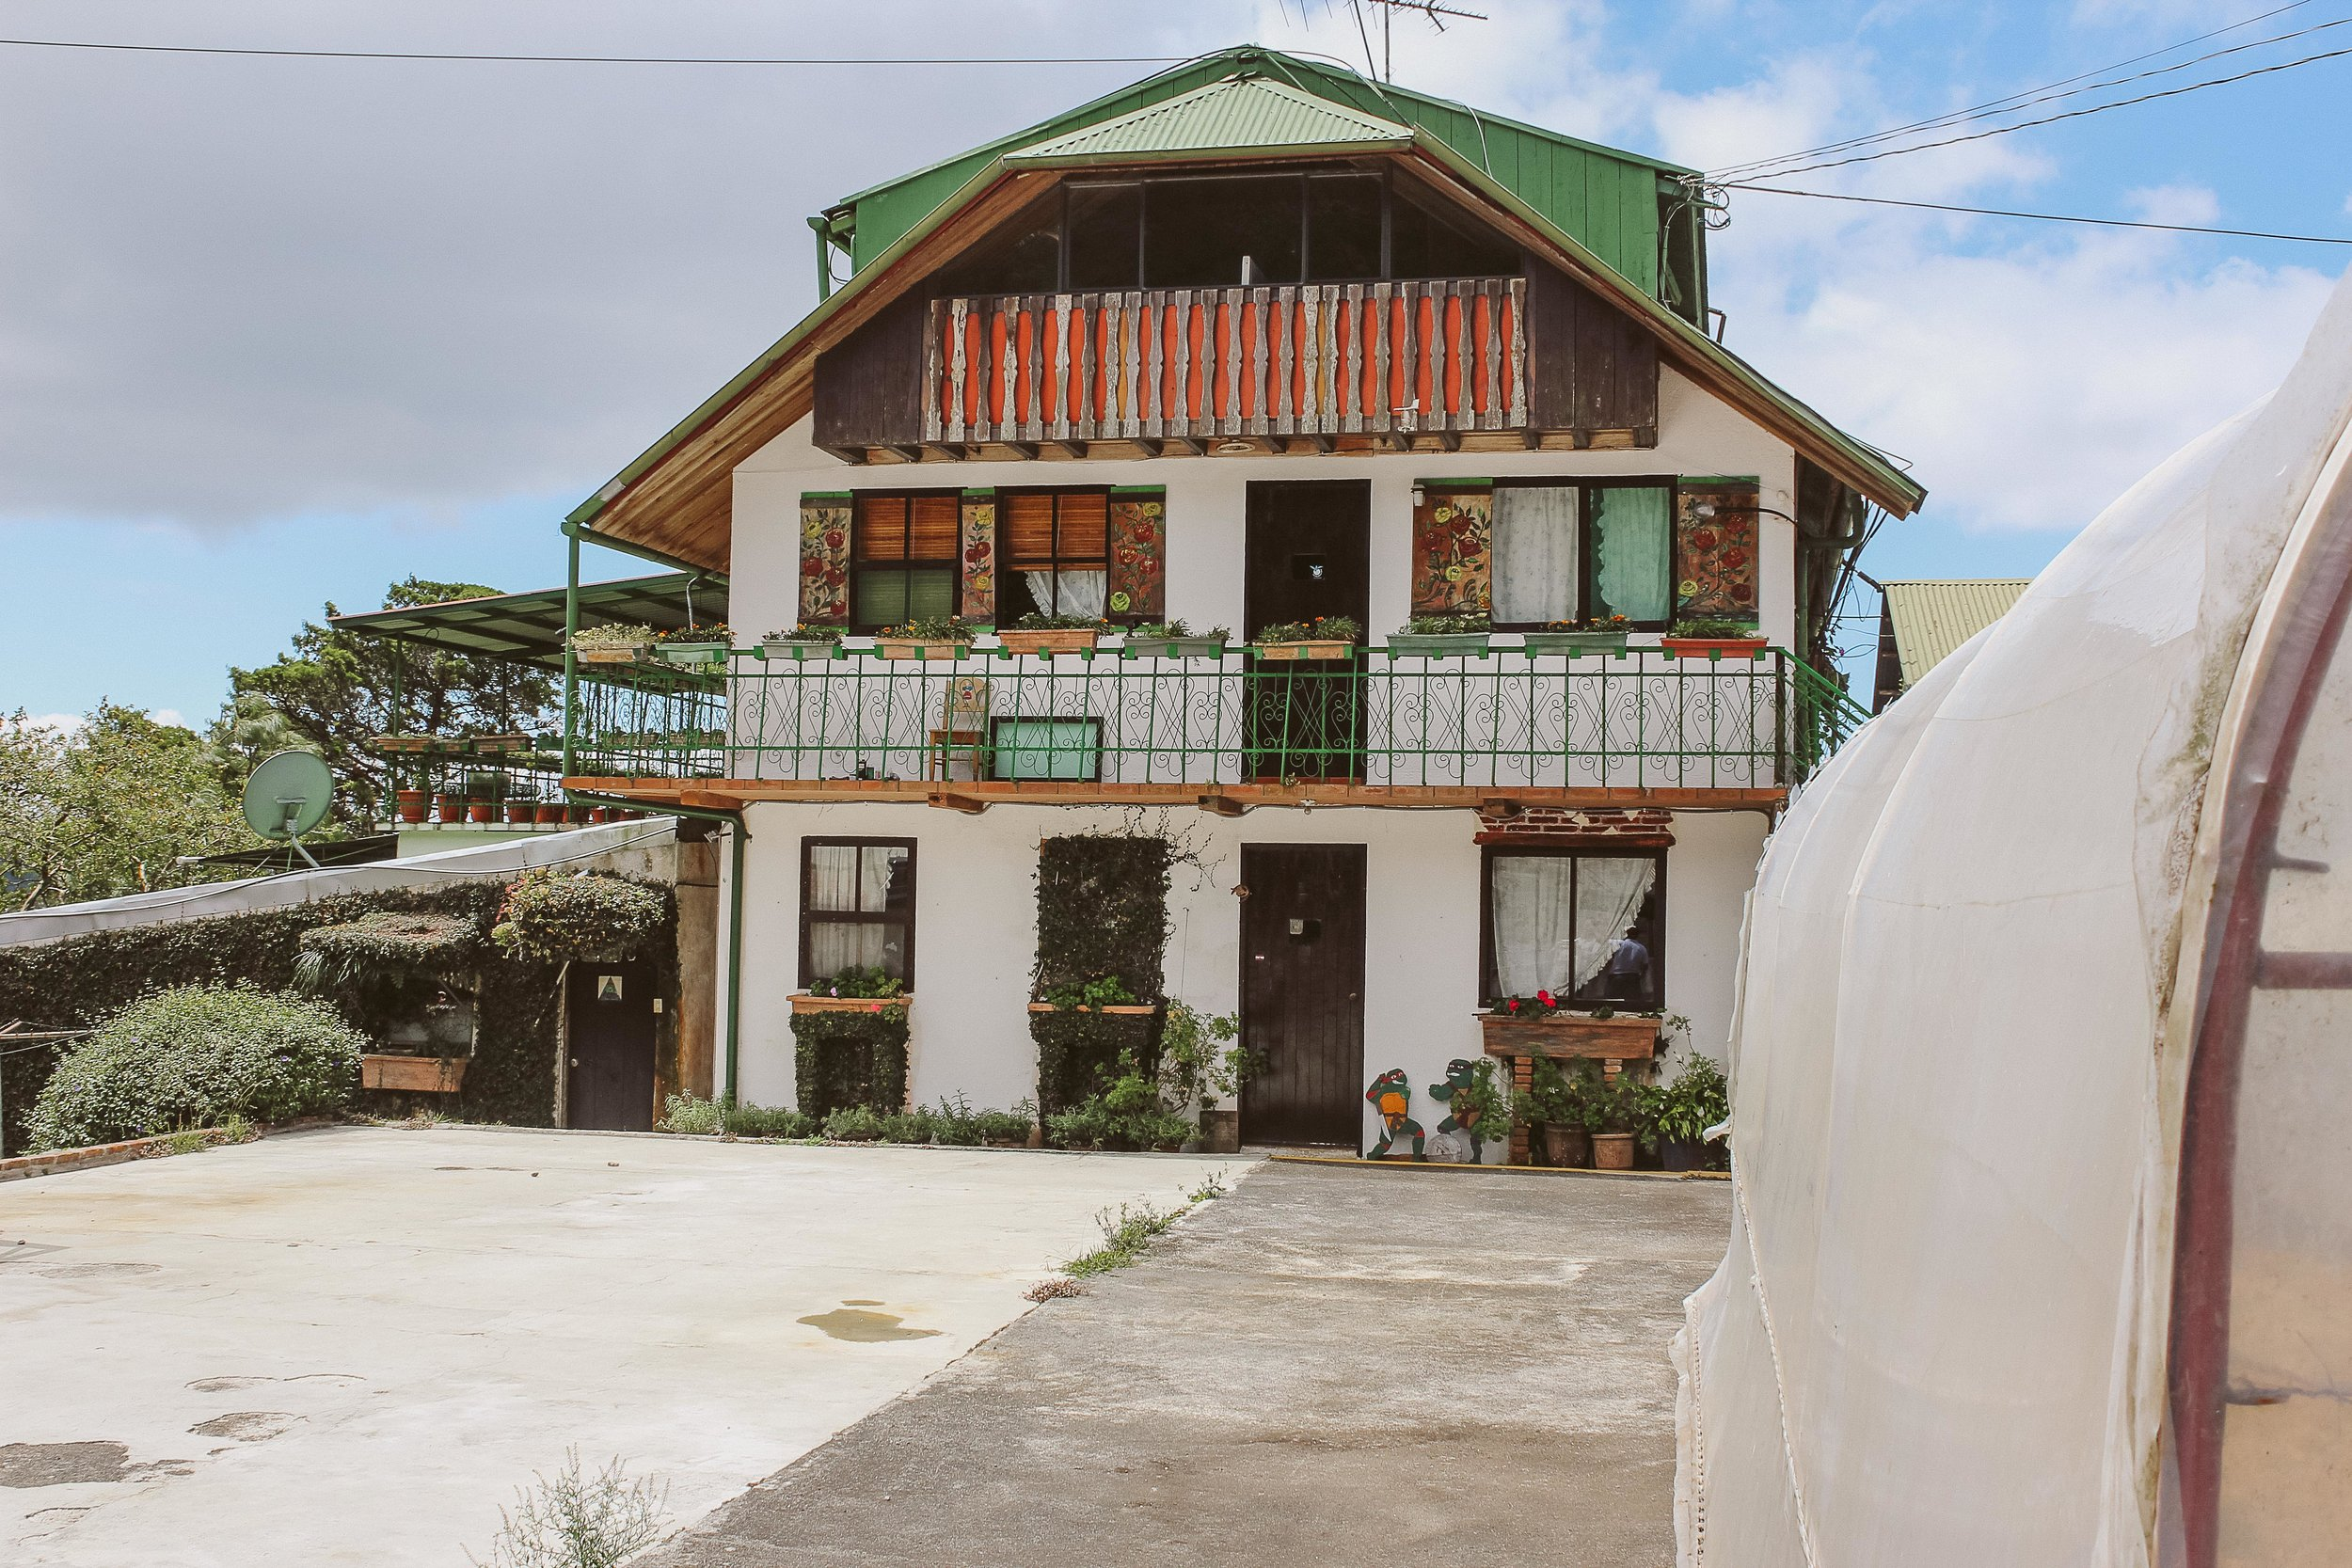 Mausi and Eddy's German heritage can be seen in the buildings, food and culture of Selva Negra